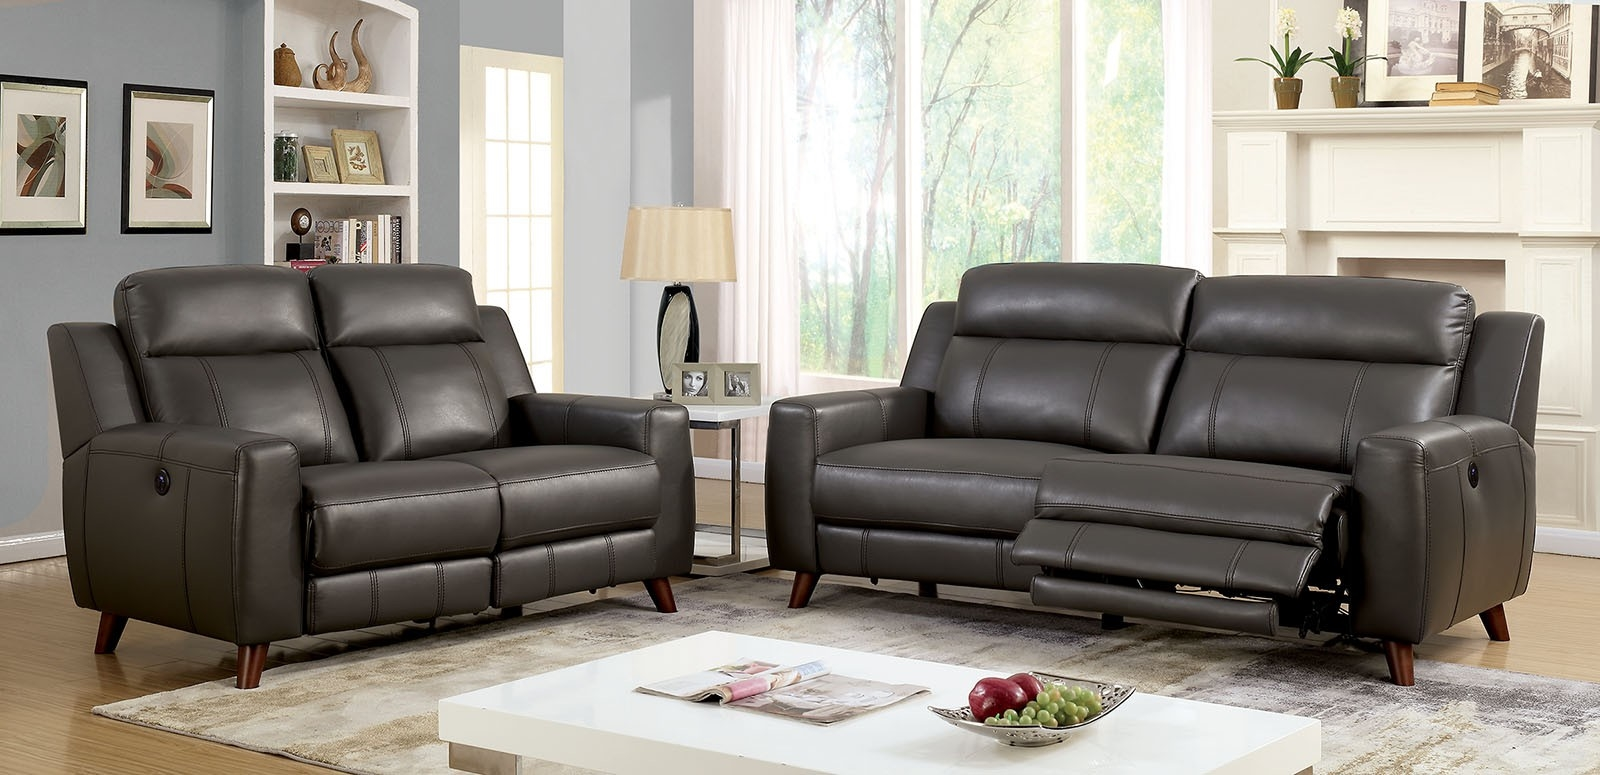 Picture of: Rosalynn Mid Century Modern Style Grey Leatherette Reclining Sofa By Furniture Of America